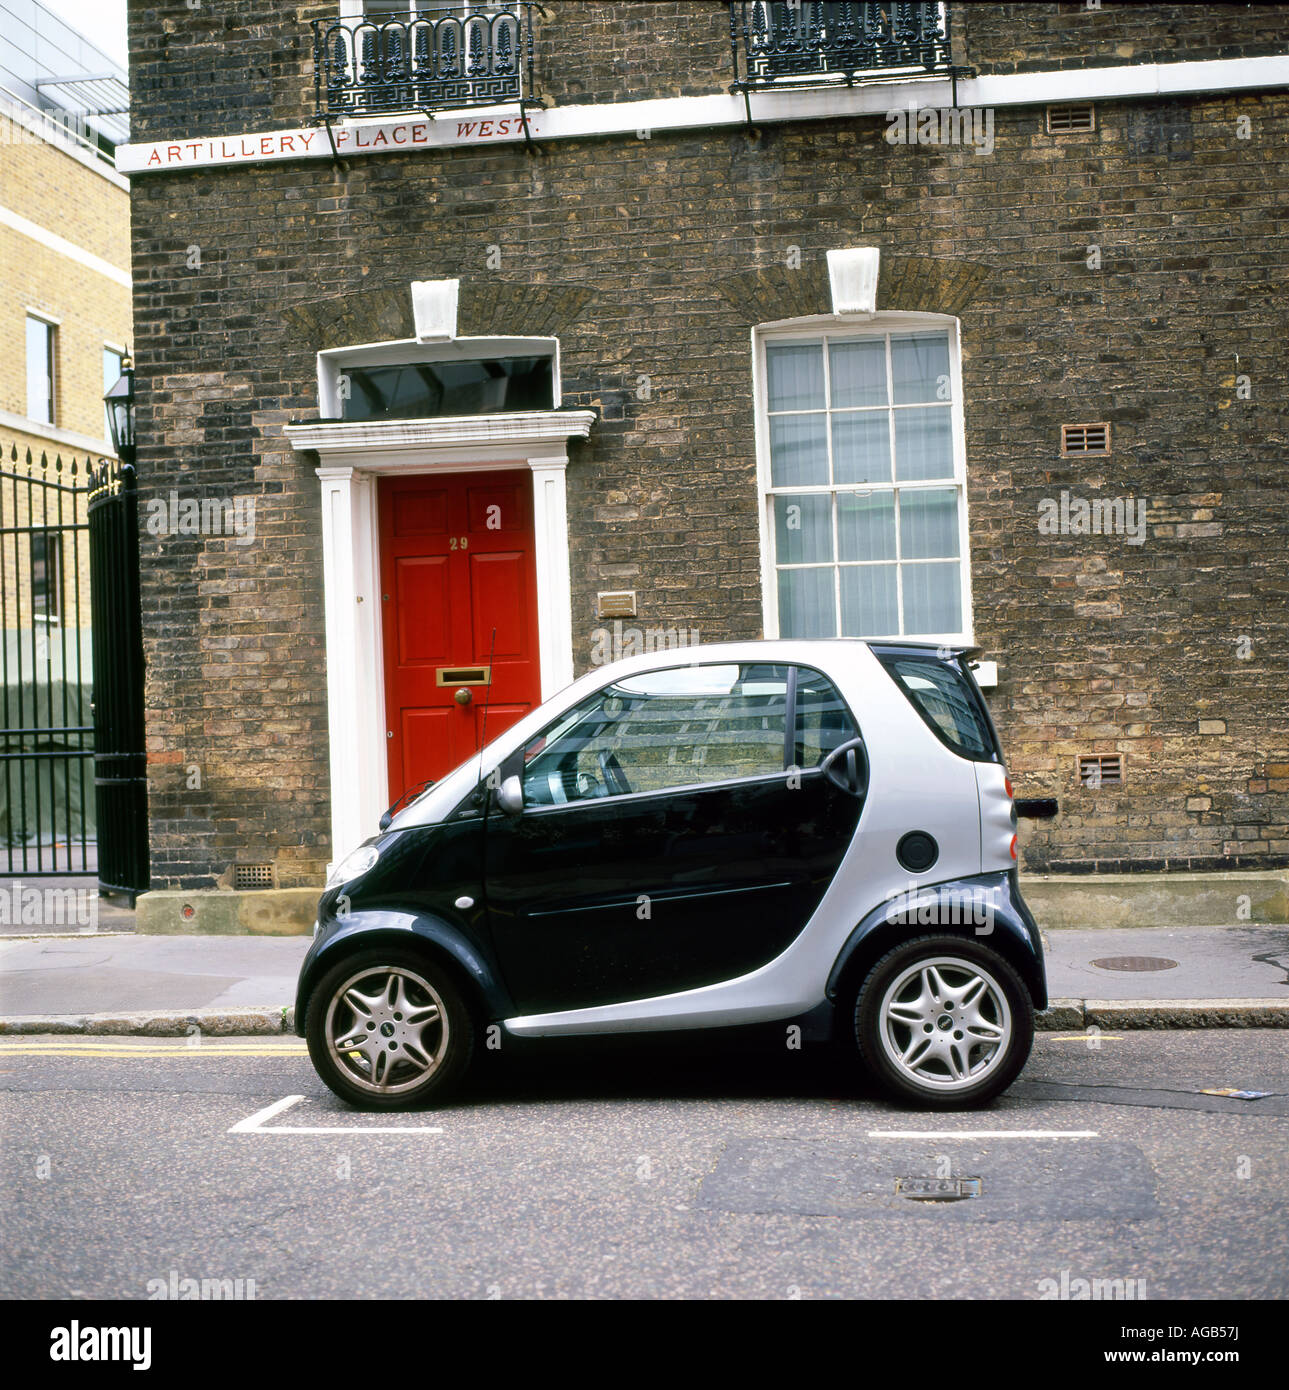 A Smart Car parked outside a stone terraced house with a red door on Artillery Row West, Bunhill Row, Finsbury, - Stock Image